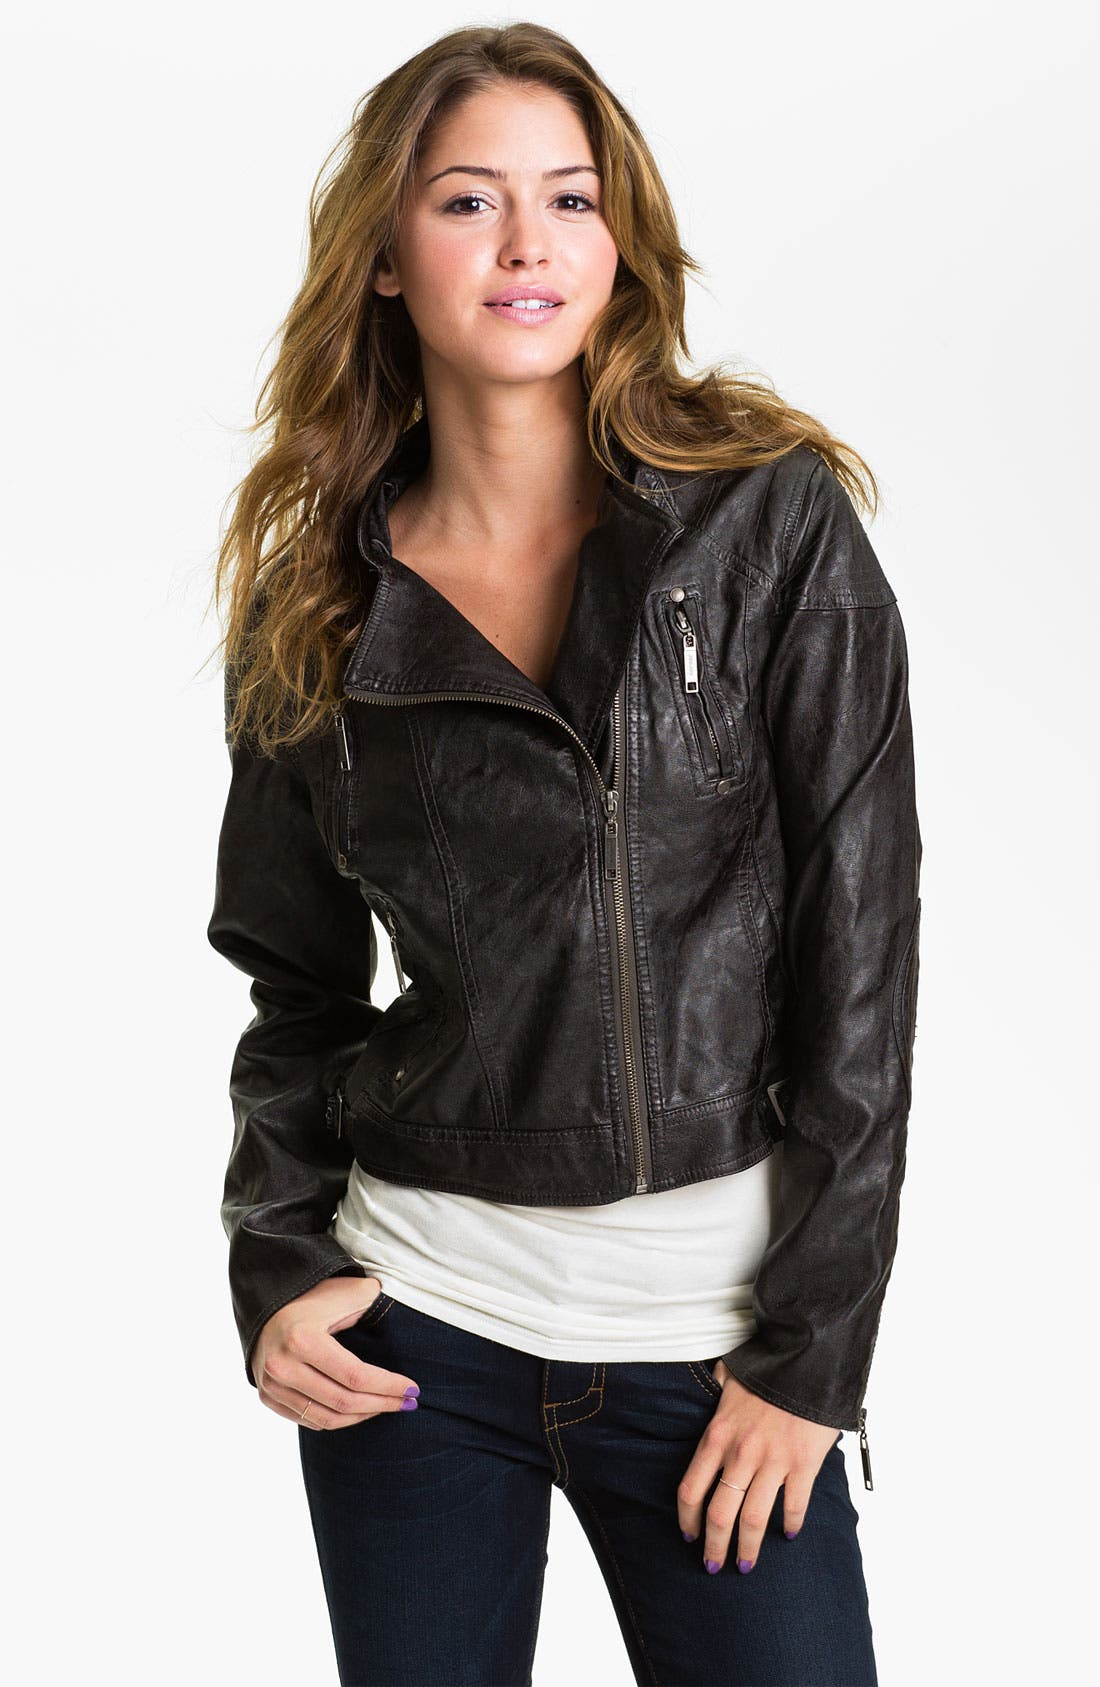 Shop for Juniors Faux Leather Jackets and Coats at nakedprogrammzce.cf Eligible for free shipping and free returns. Junior Collarless Faux Leather Jacket-XS, Black $ 9 Aeropostale. Womens Leather Canvas Colorblock Motorcycle Jacket $ 75 5 out of 5 stars 2. Alpinestars.